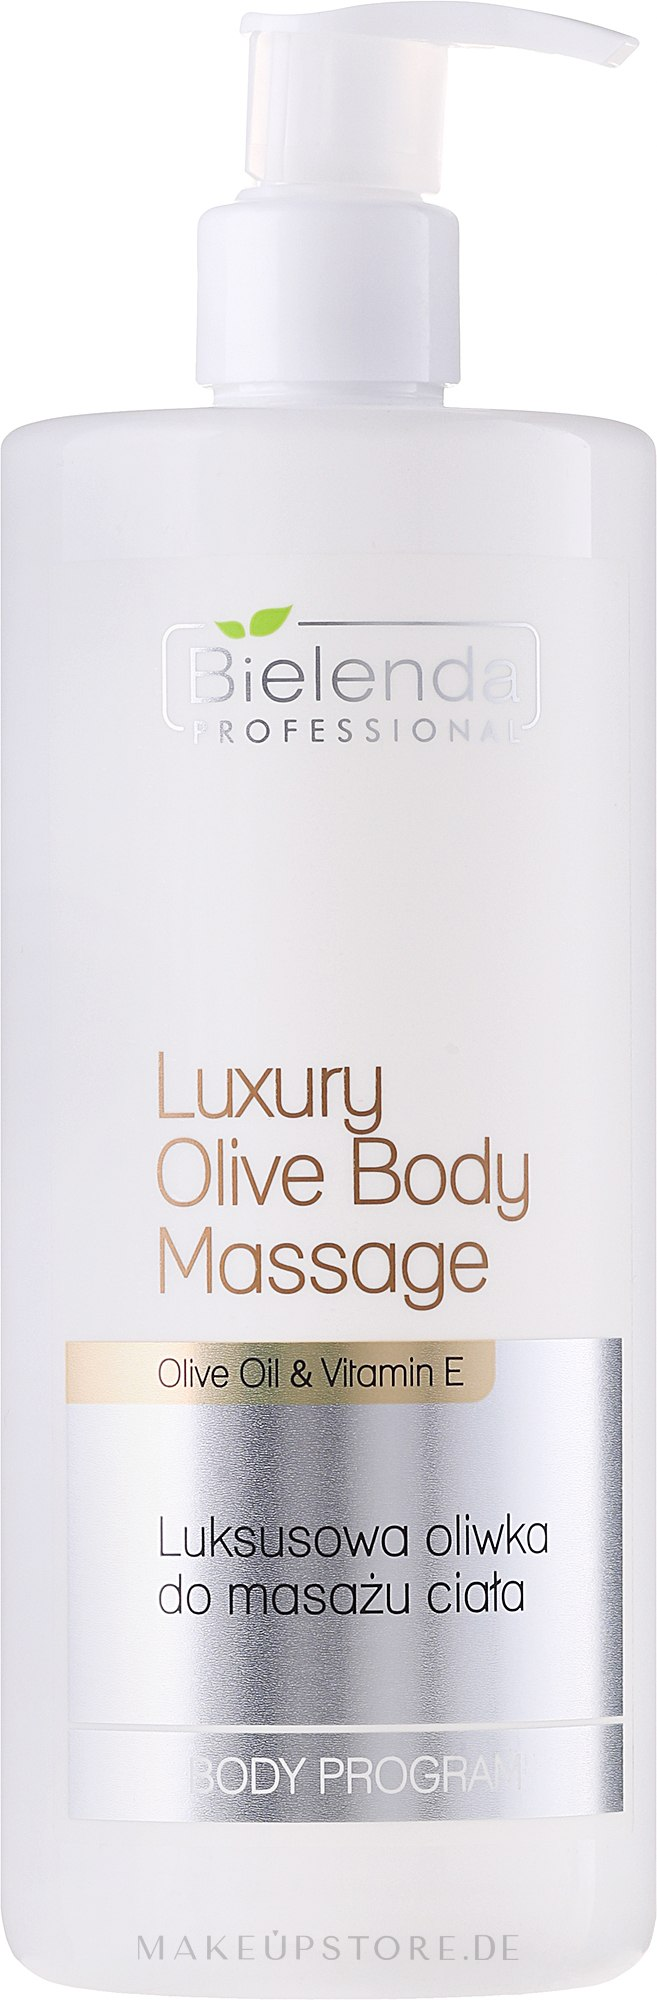 Körpermassageöl mit Vitamin E und Olivenöl - Bielenda Professional Body Program Luxury Olive For Body Massage — Bild 500 ml